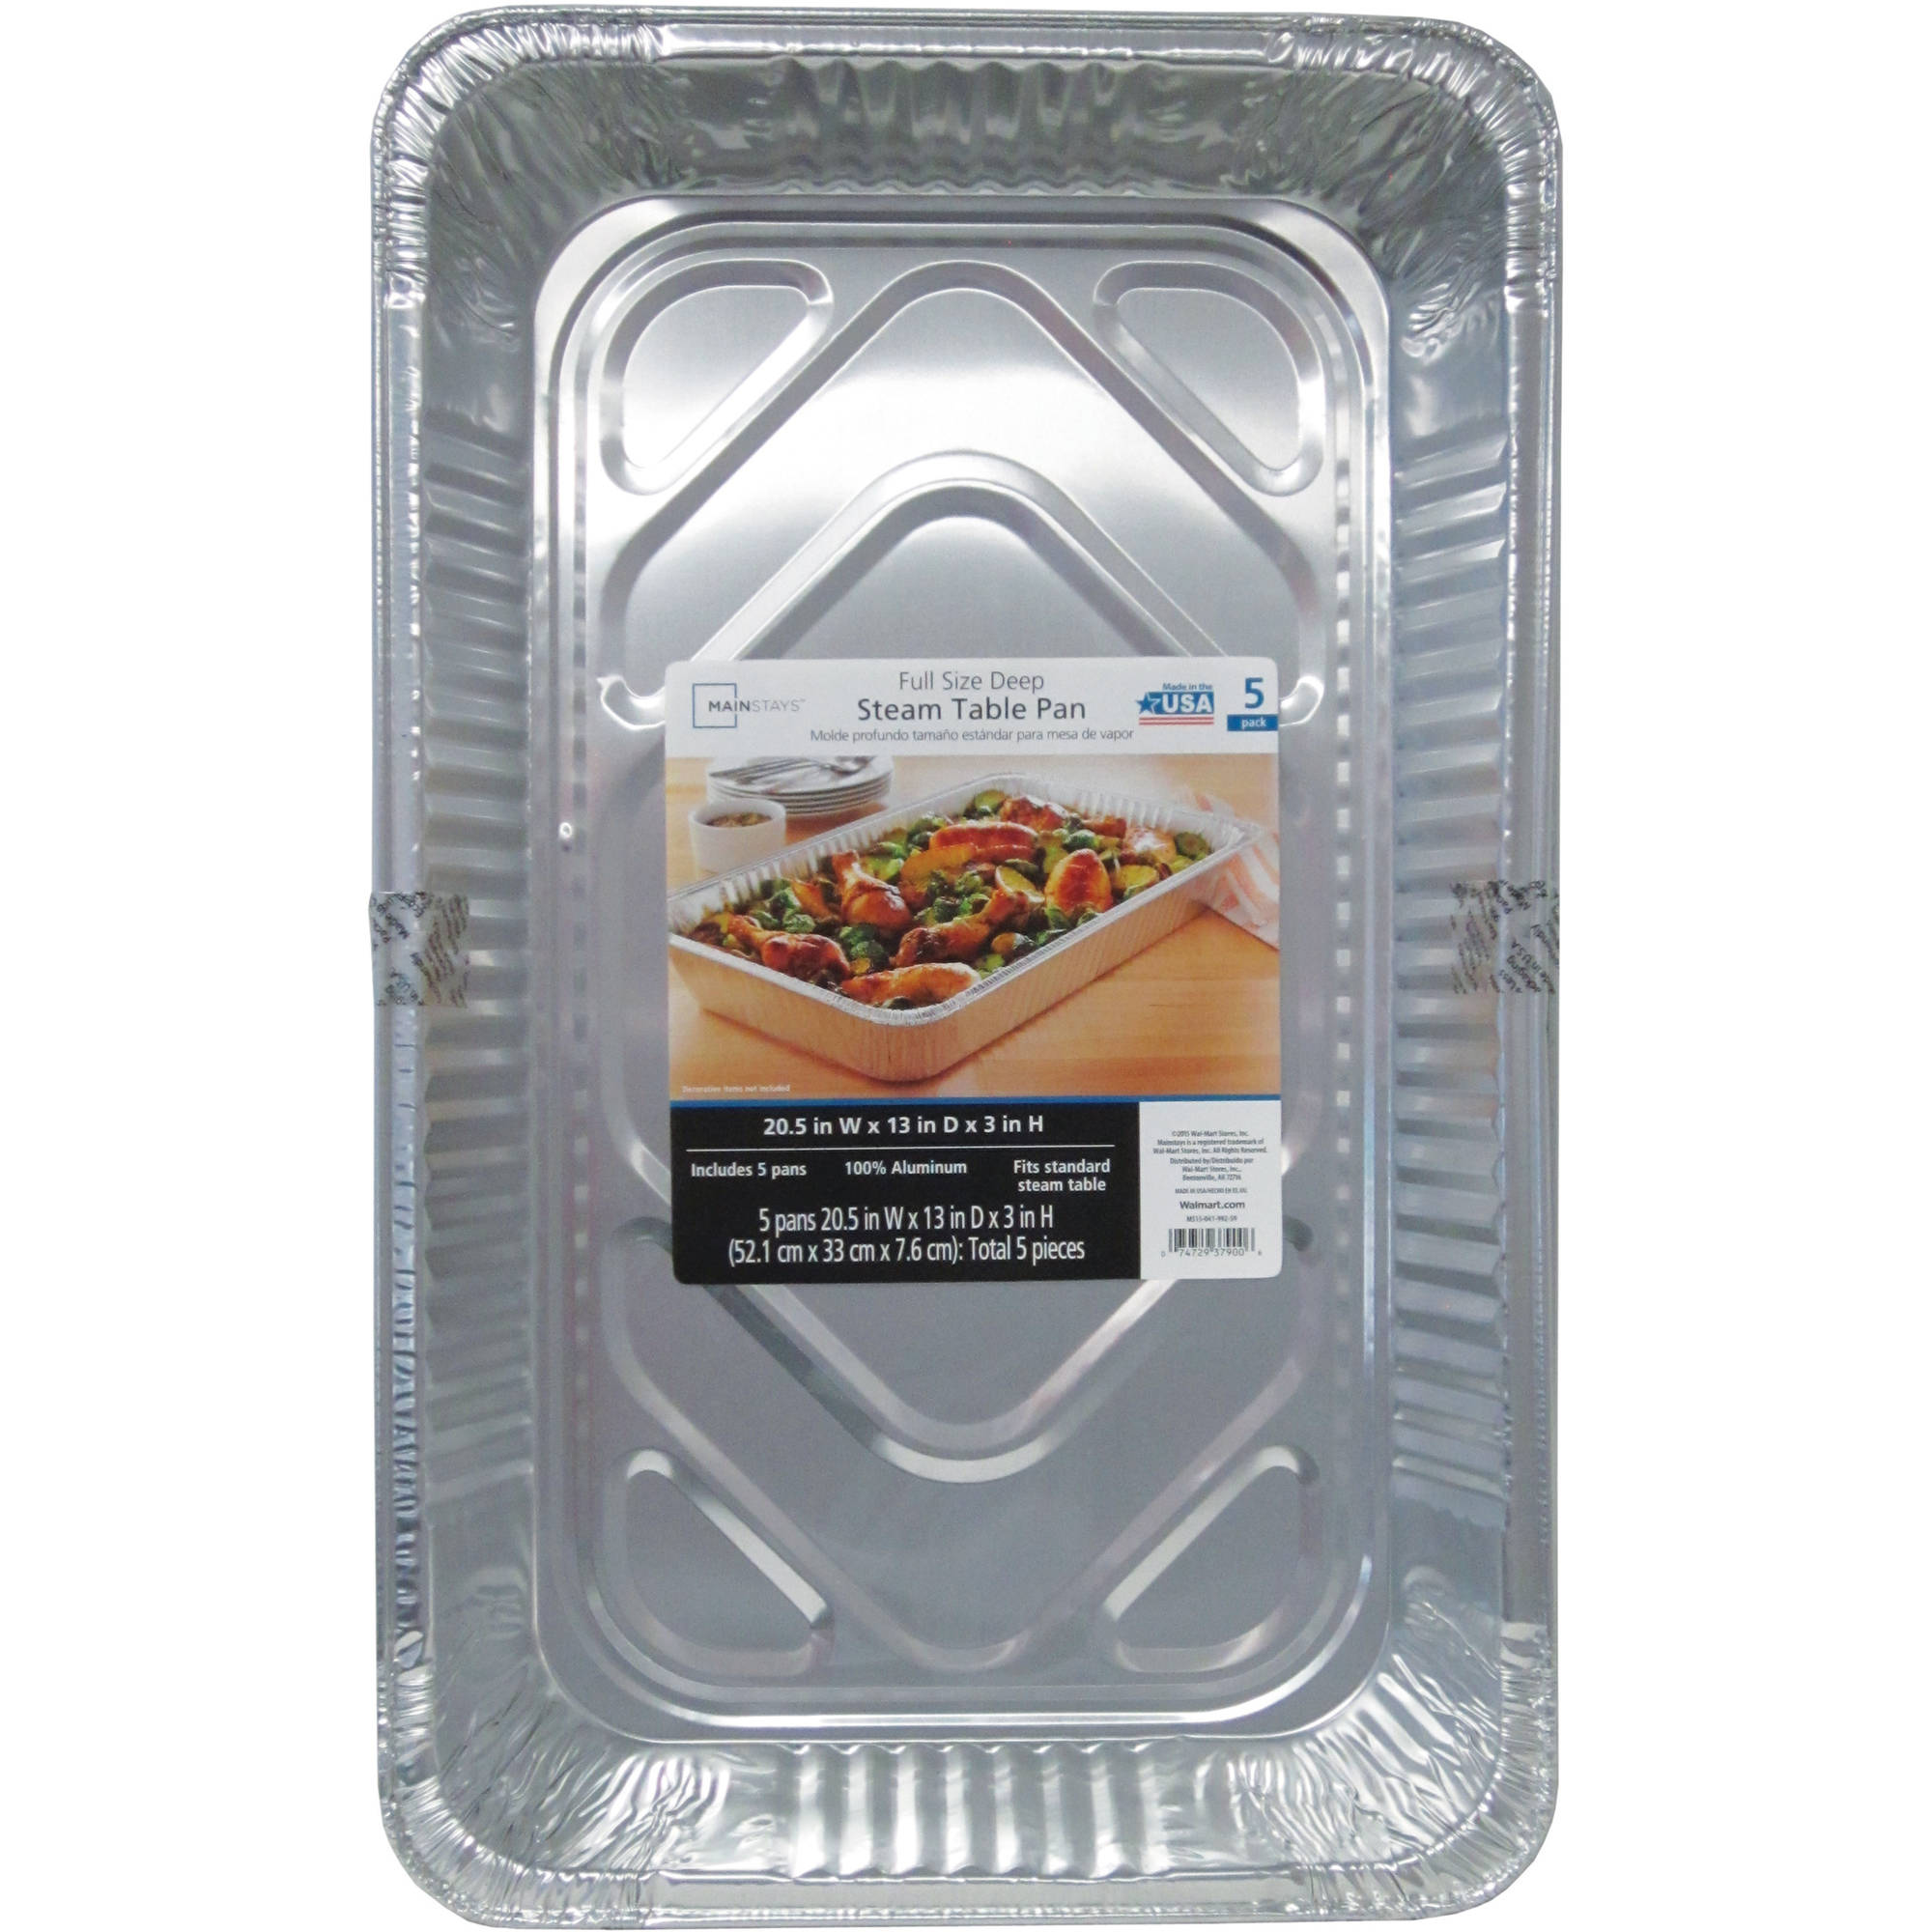 Mainstays Full-Size Deep Steam Pans, 5-Pack